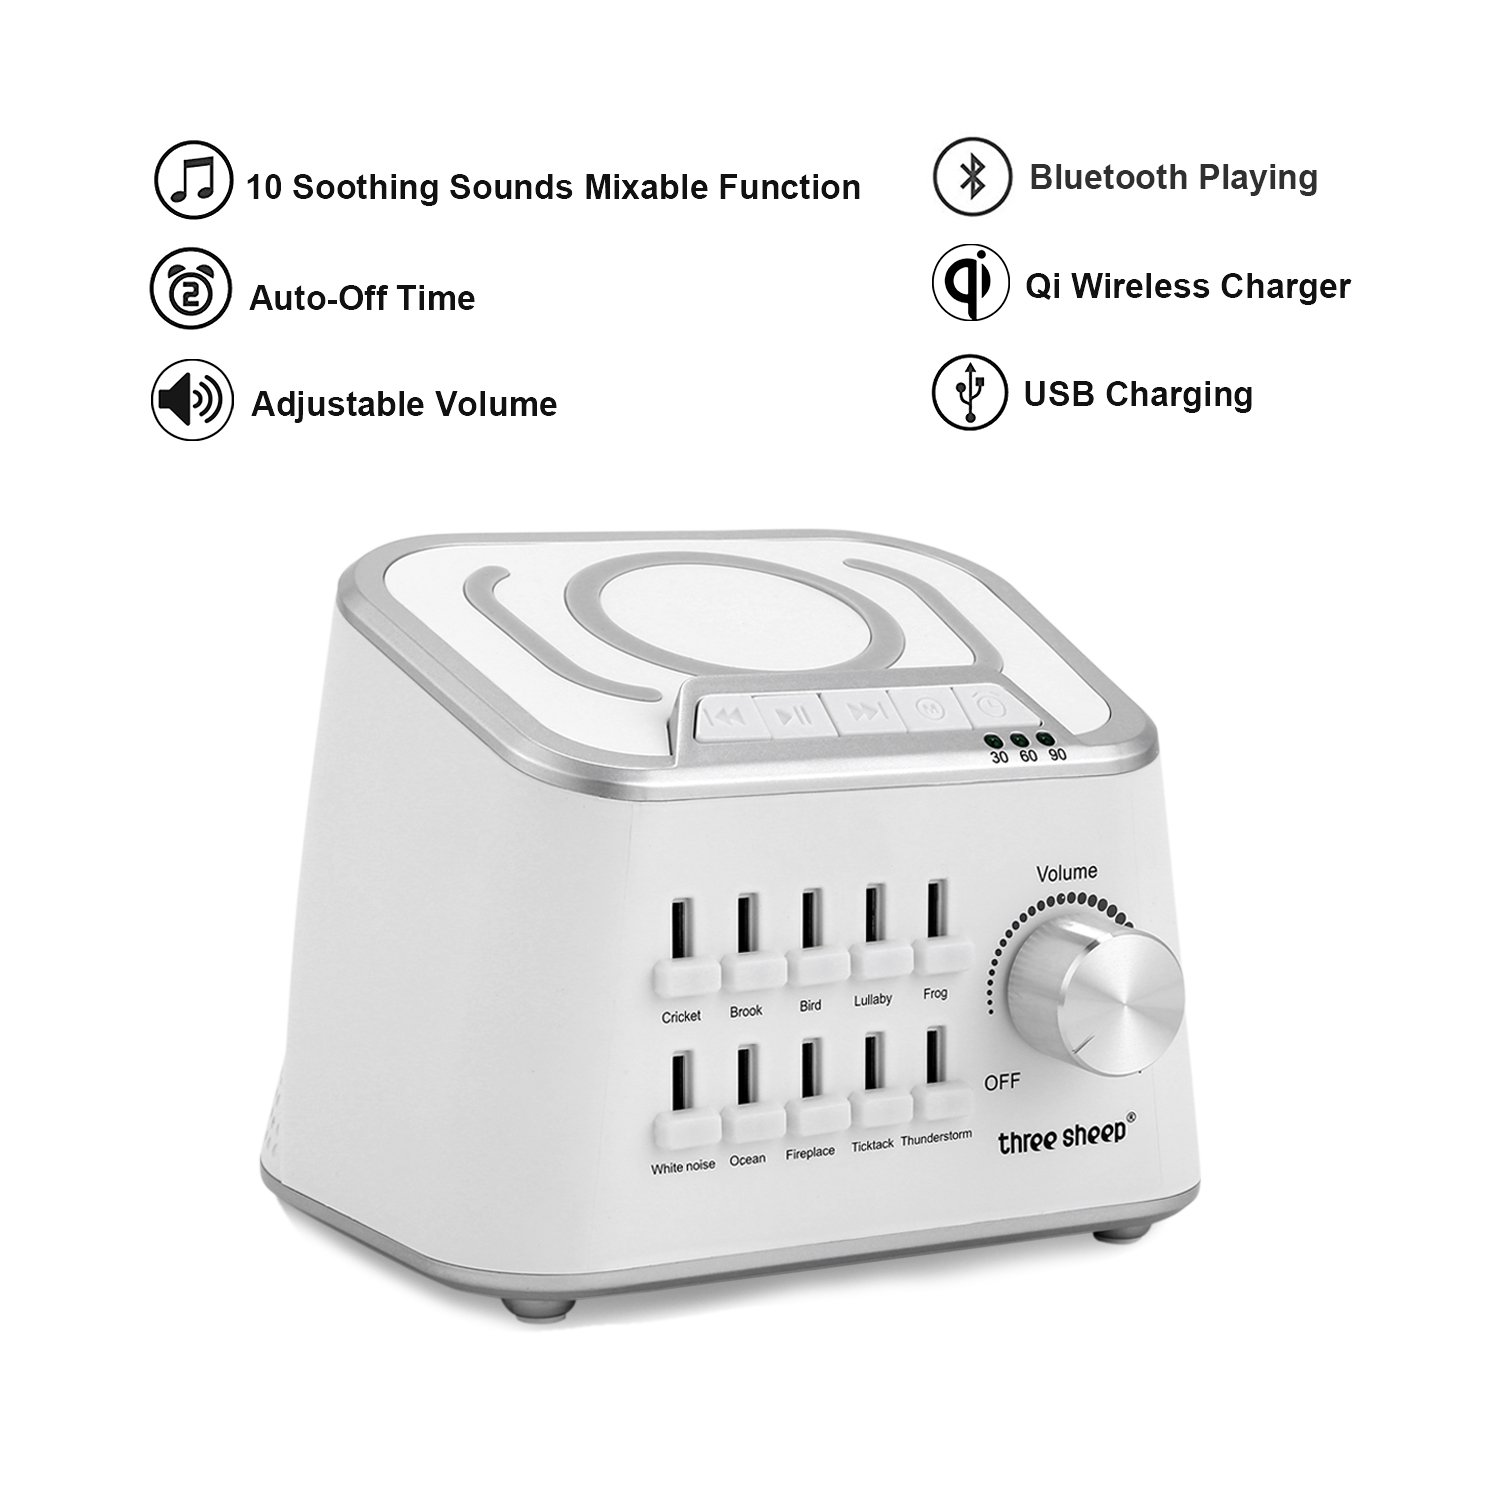 Sound Machine for Sleeping Relaxation Portable Sleep Sound Therapy with 10 Natural and Soothing Sounds for Home, Office or Travel